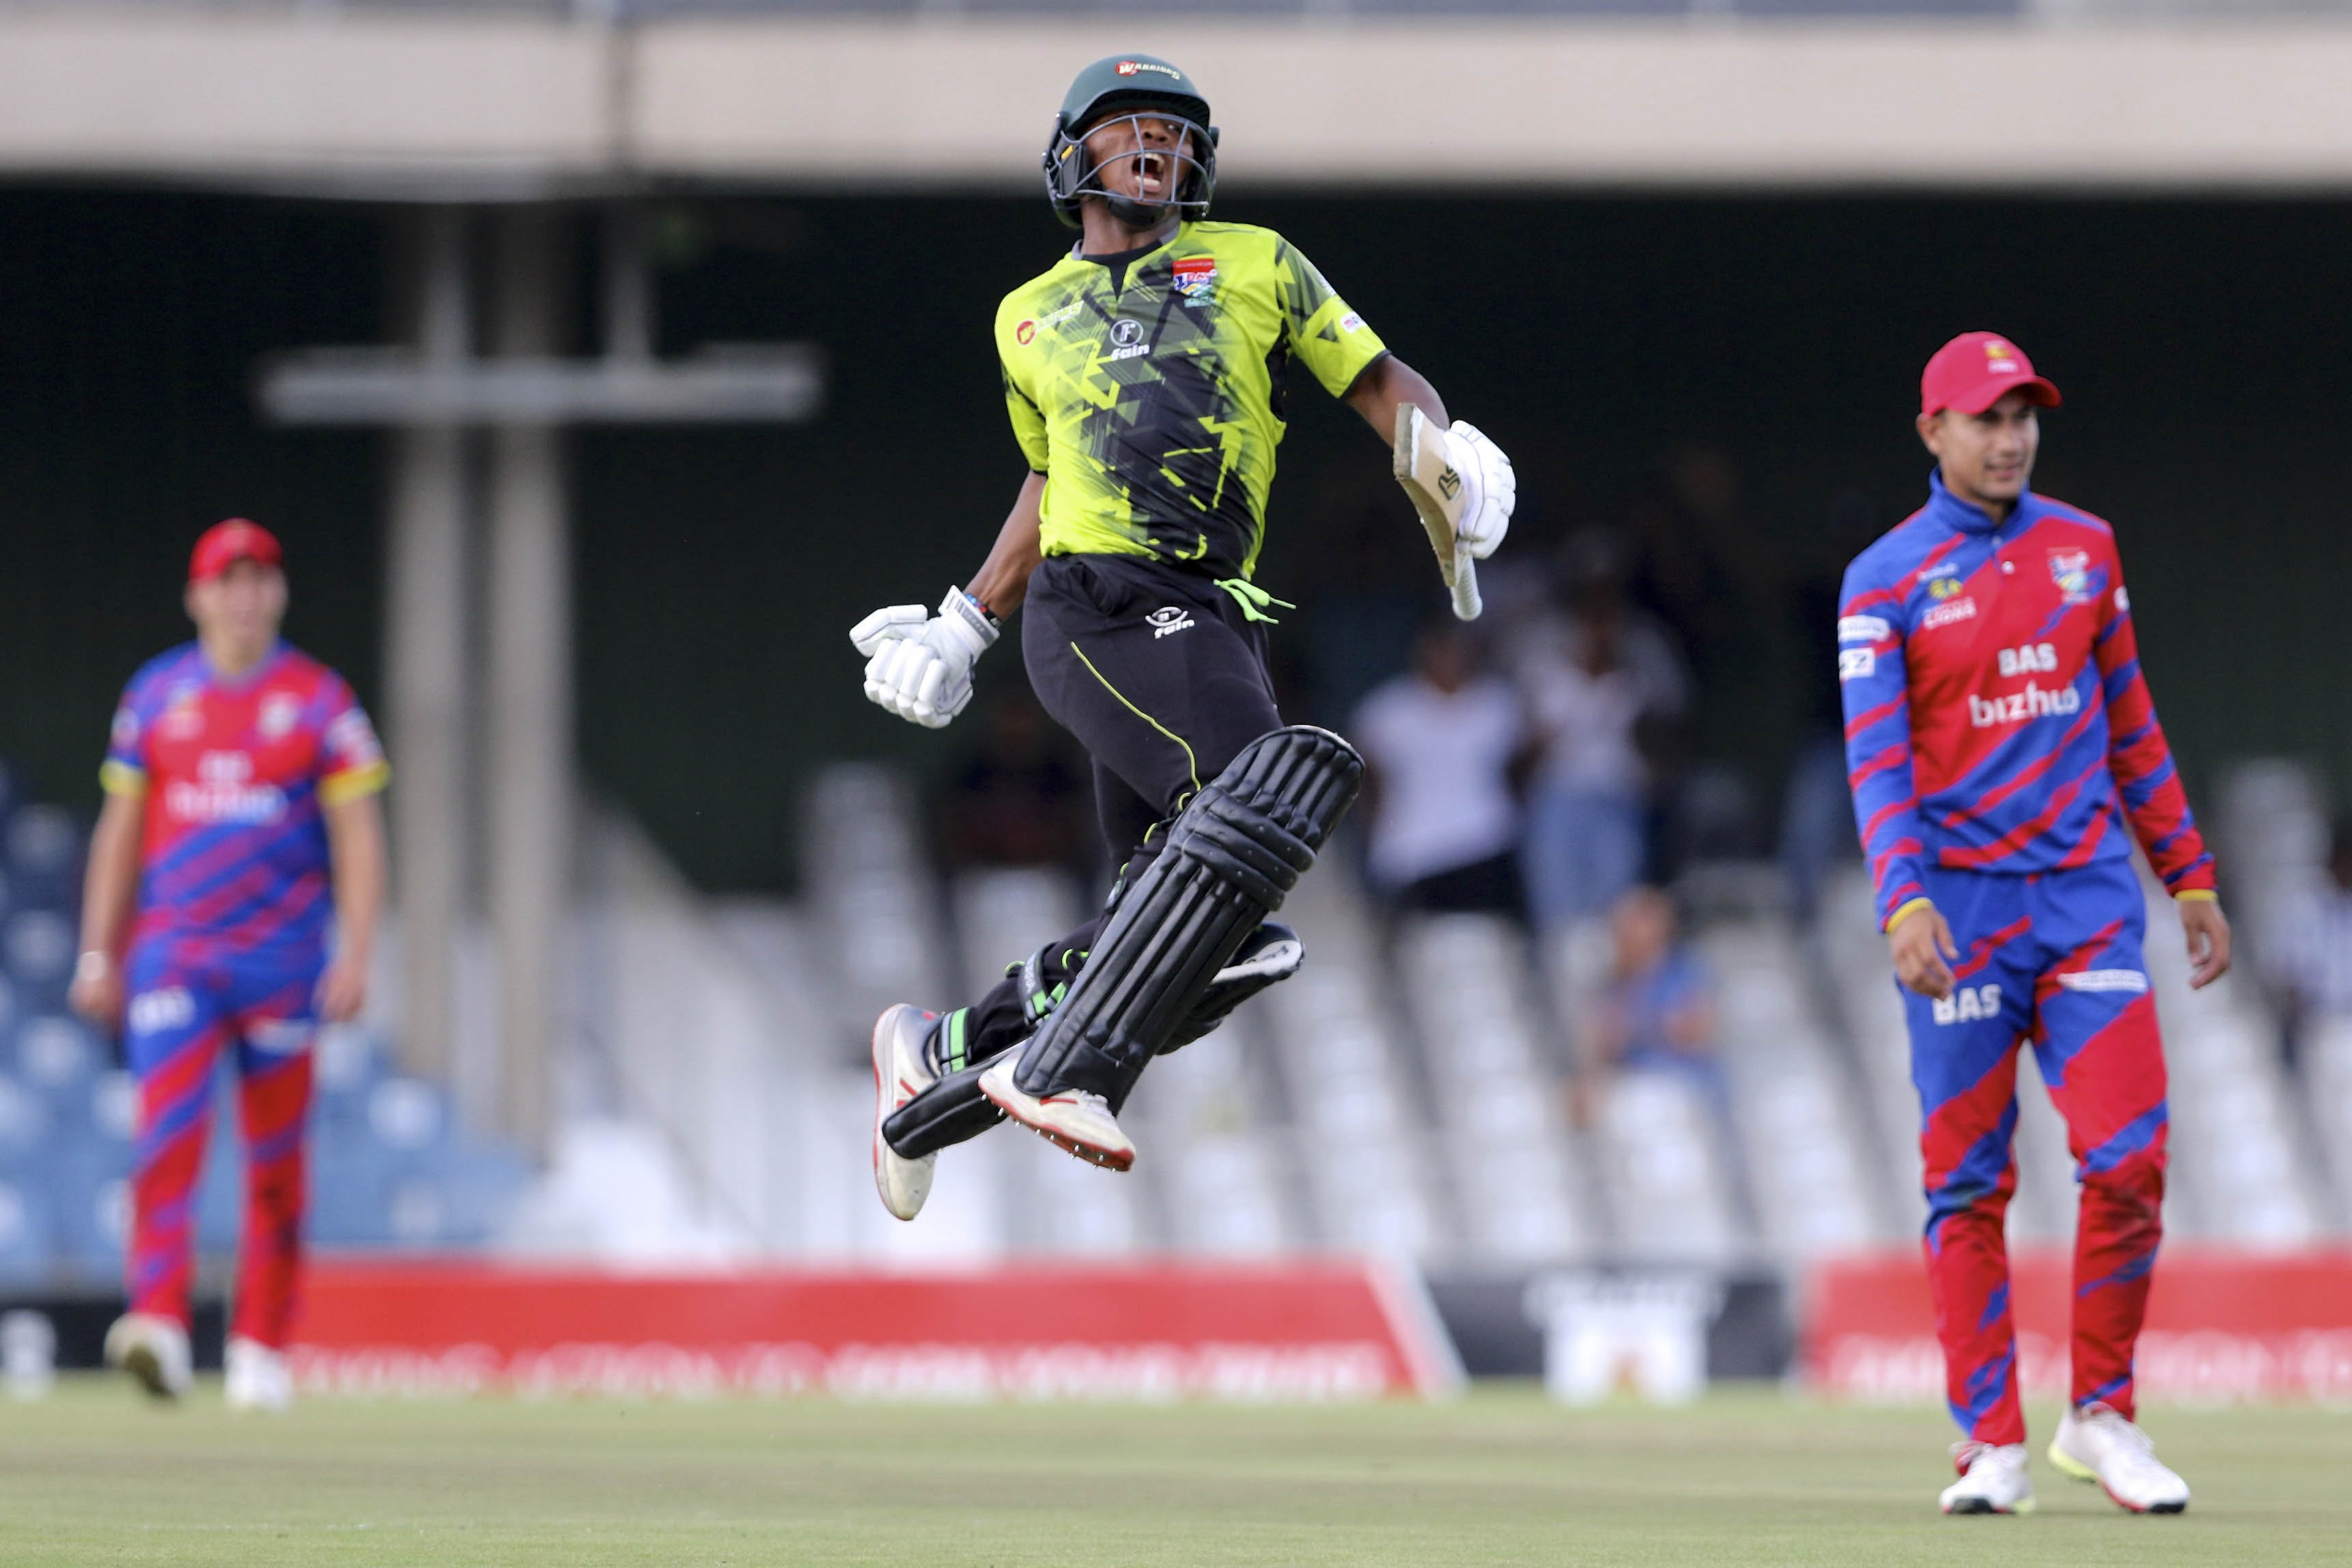 1 March 2019: 100 up for Sinethemba Qeshile of the Warriors during the Momentum One-Day Cup match against the bizhub Highveld Lions at Buffalo Park in East London. (Photograph by Richard Huggard/Gallo Images)